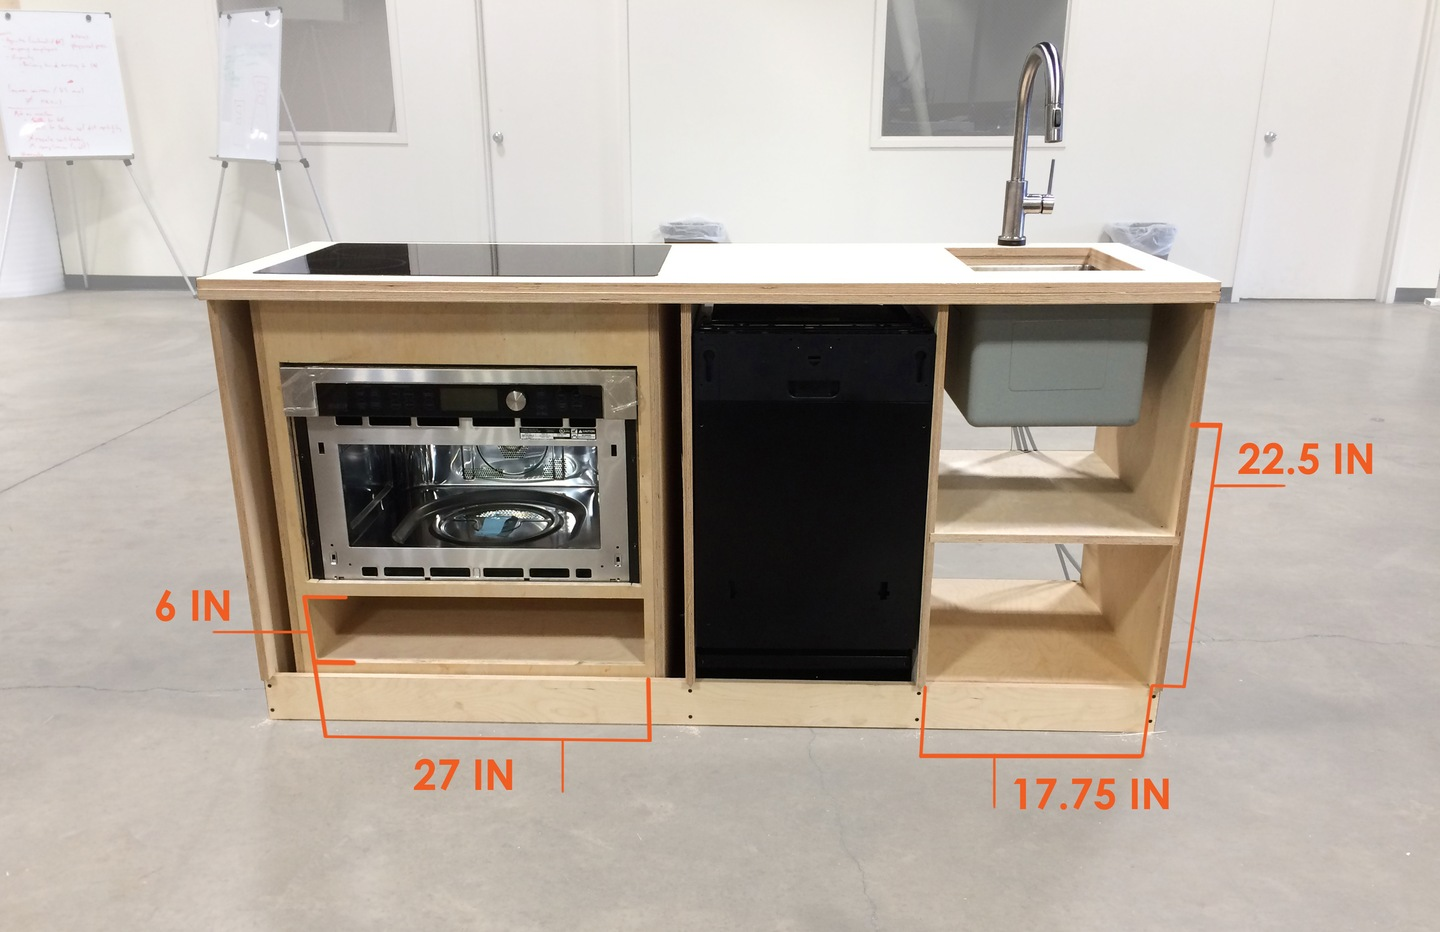 Micro Kitchen all in one micro kitchen units great for tiny homes this would be great The Micro Kitchen